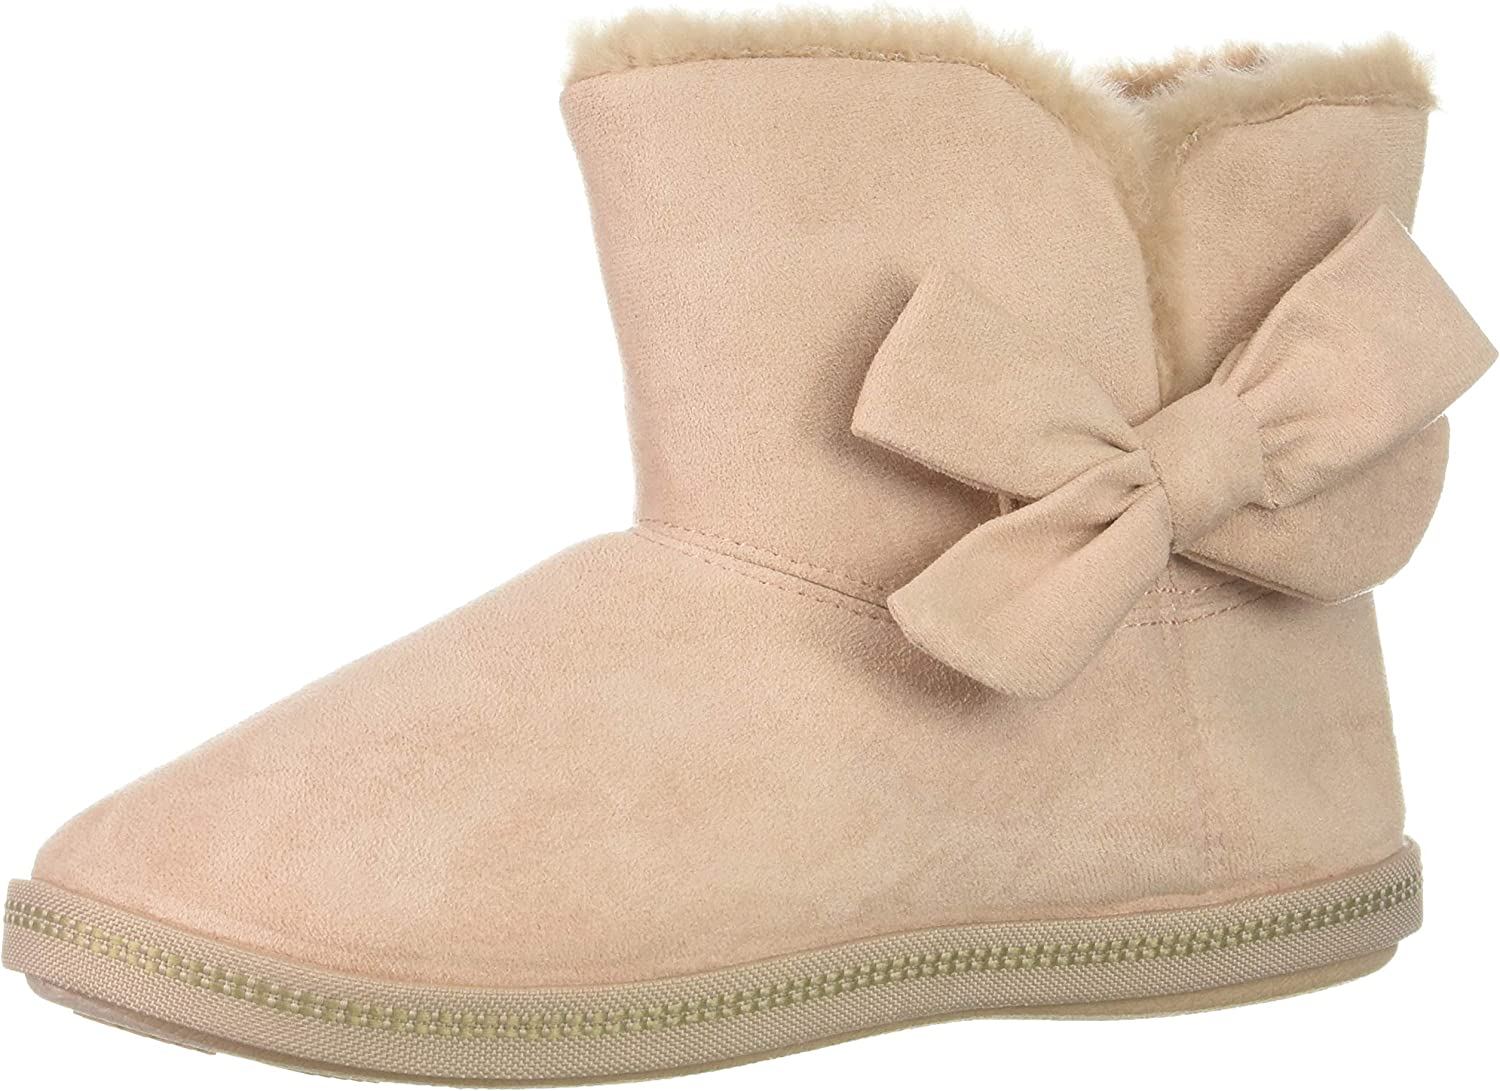 Limited Special Price Skechers Women's Cozy Campfire-Microfiber Boot Bow Slipper New mail order with